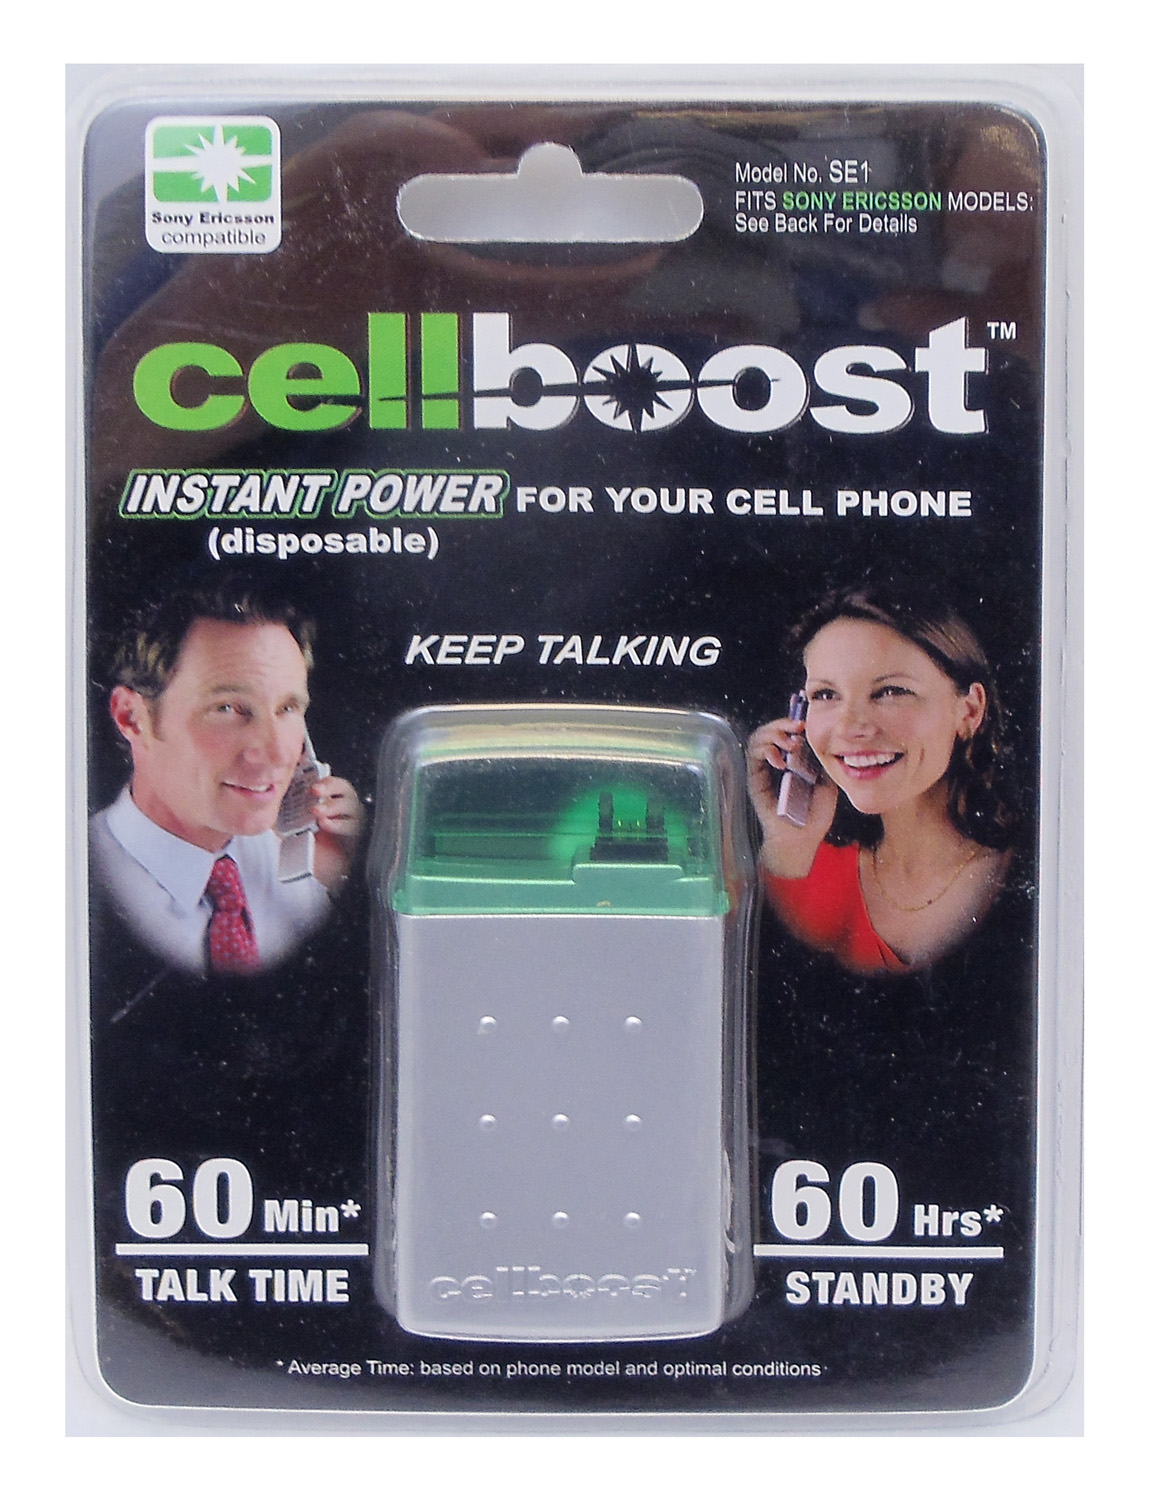 CELLBOOST - PROVIDES INSTANT POWER UP TO 60 MINUTES TALK TIME & 60 HOURS STANDBY FOR SONY ERICSSON PHONES